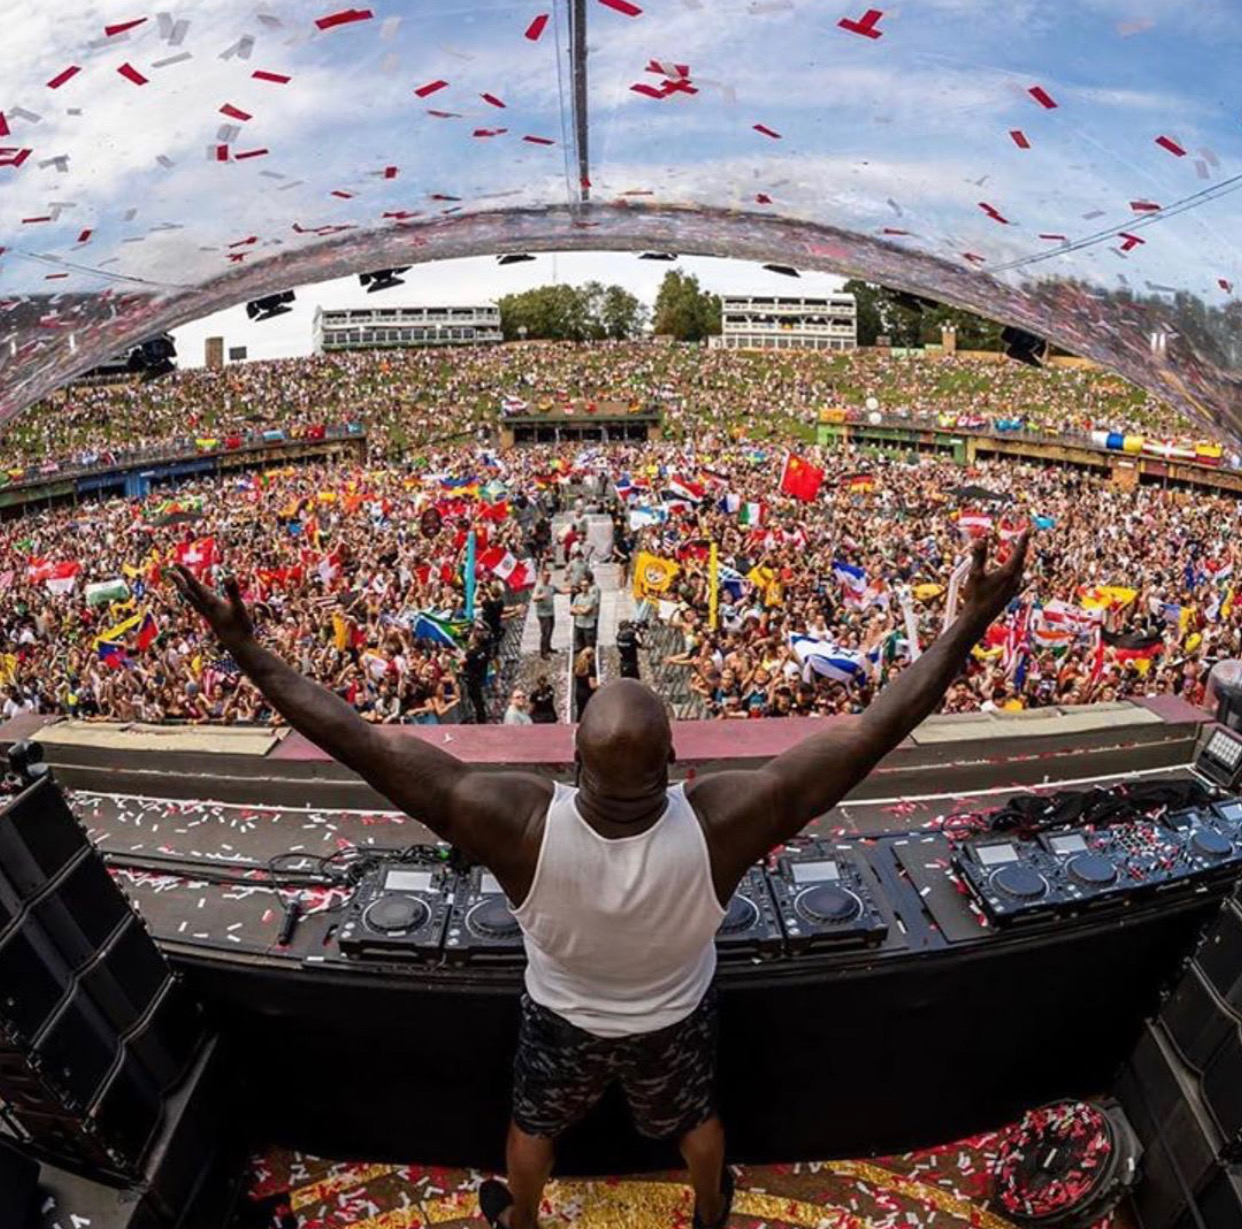 https://shaqfuradio.com/wp-content/uploads/2019/08/Shaq-DJ-Diesel-Tomorrowland-Belgium-2019.jpg